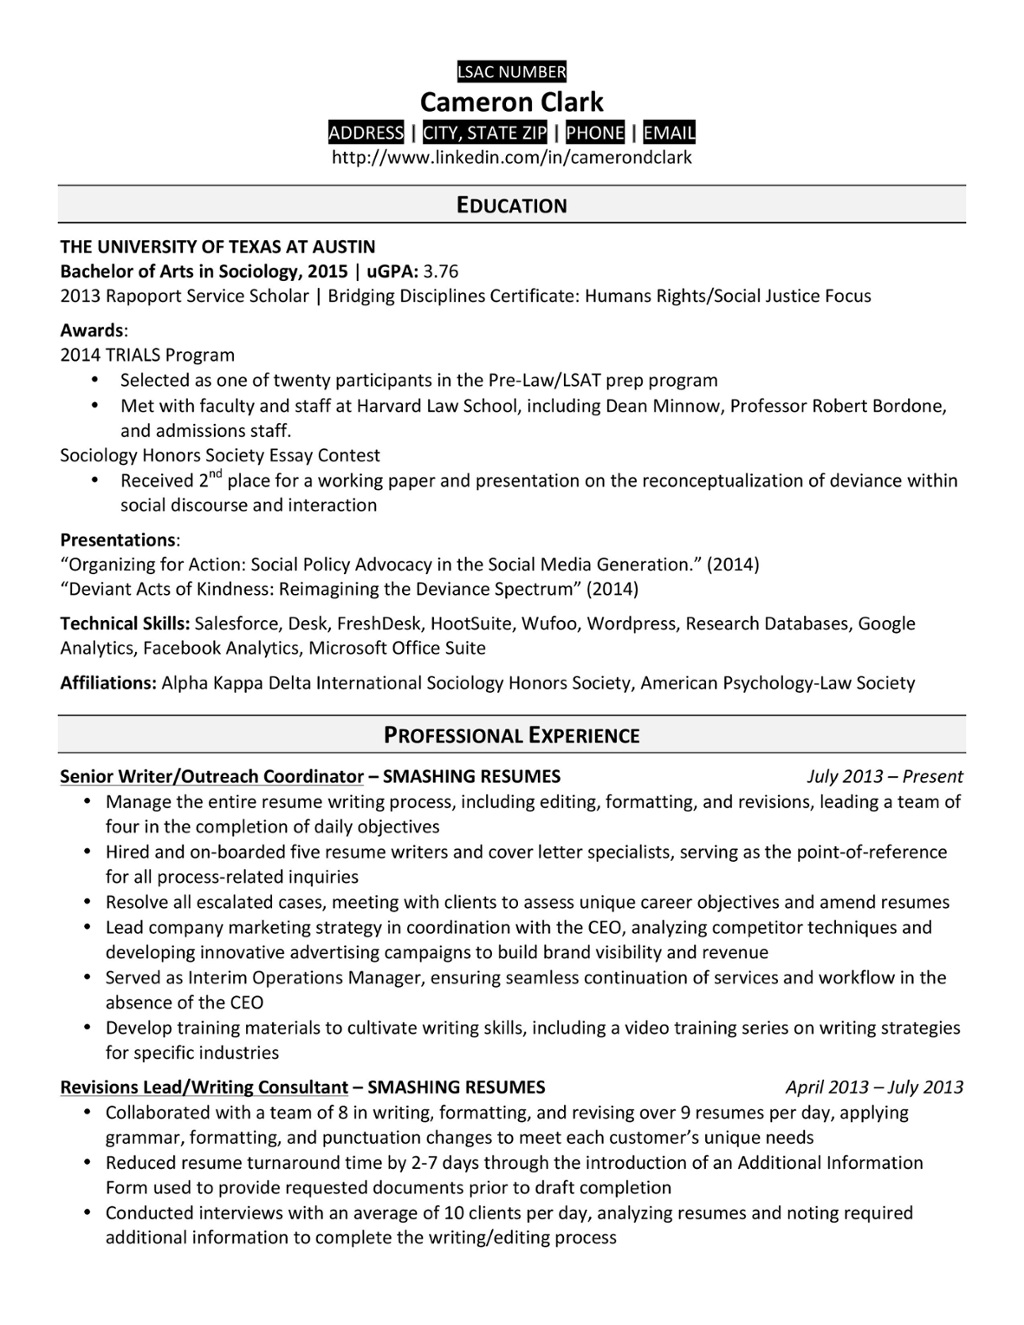 a law school resume that made the cut top law schools us news - Law School Resume